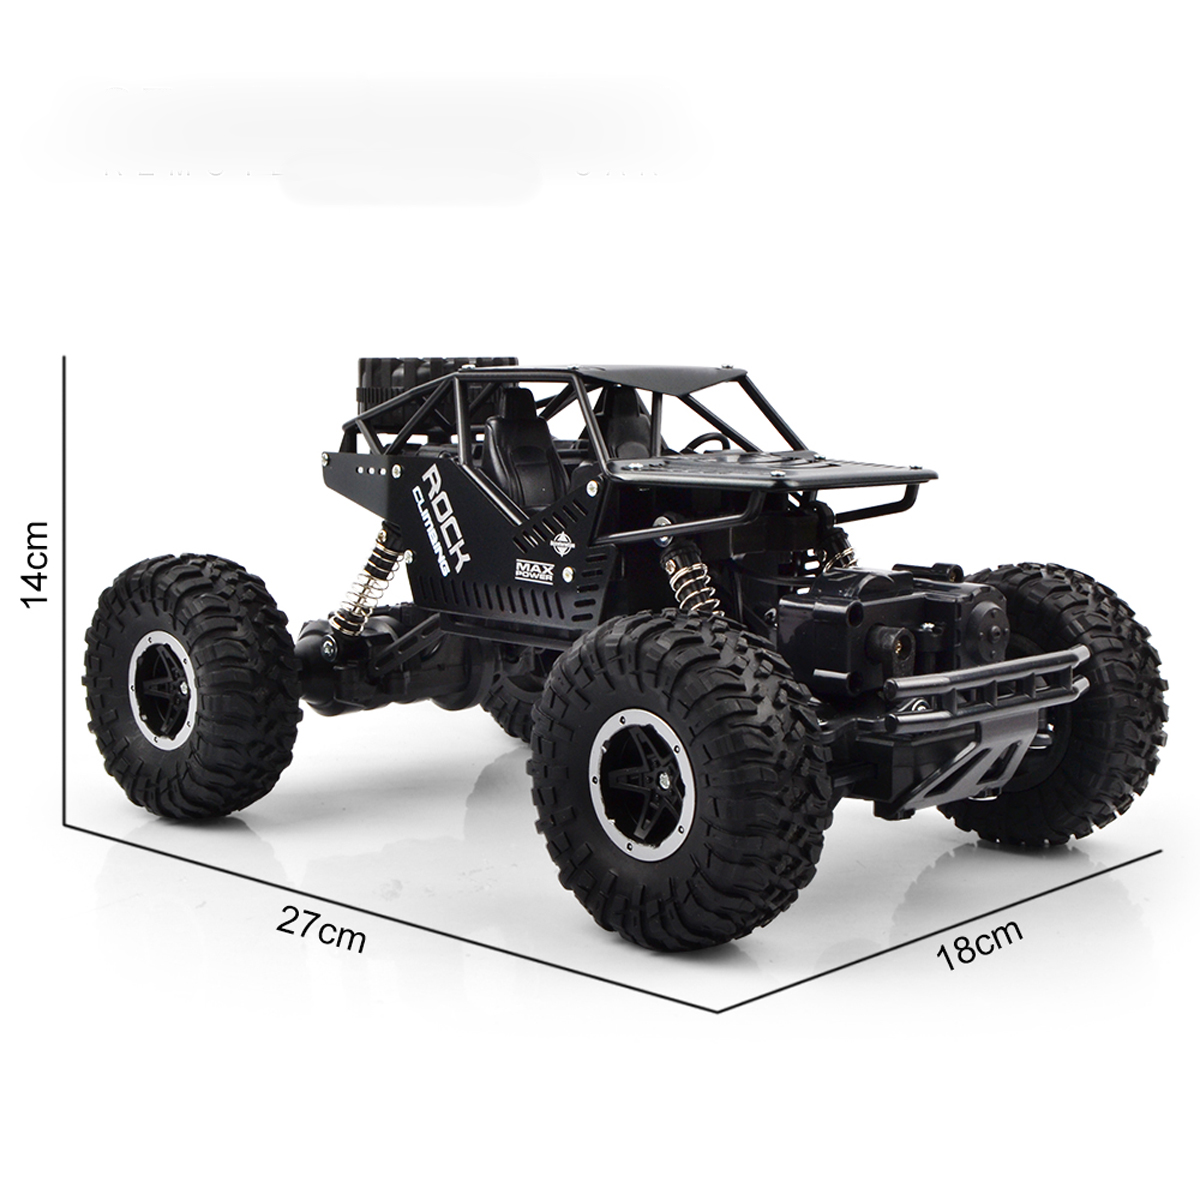 24g Rc Truck Off Road Monster Remote Control Climbing Car Military Dump Music 14 Cm Detail Image